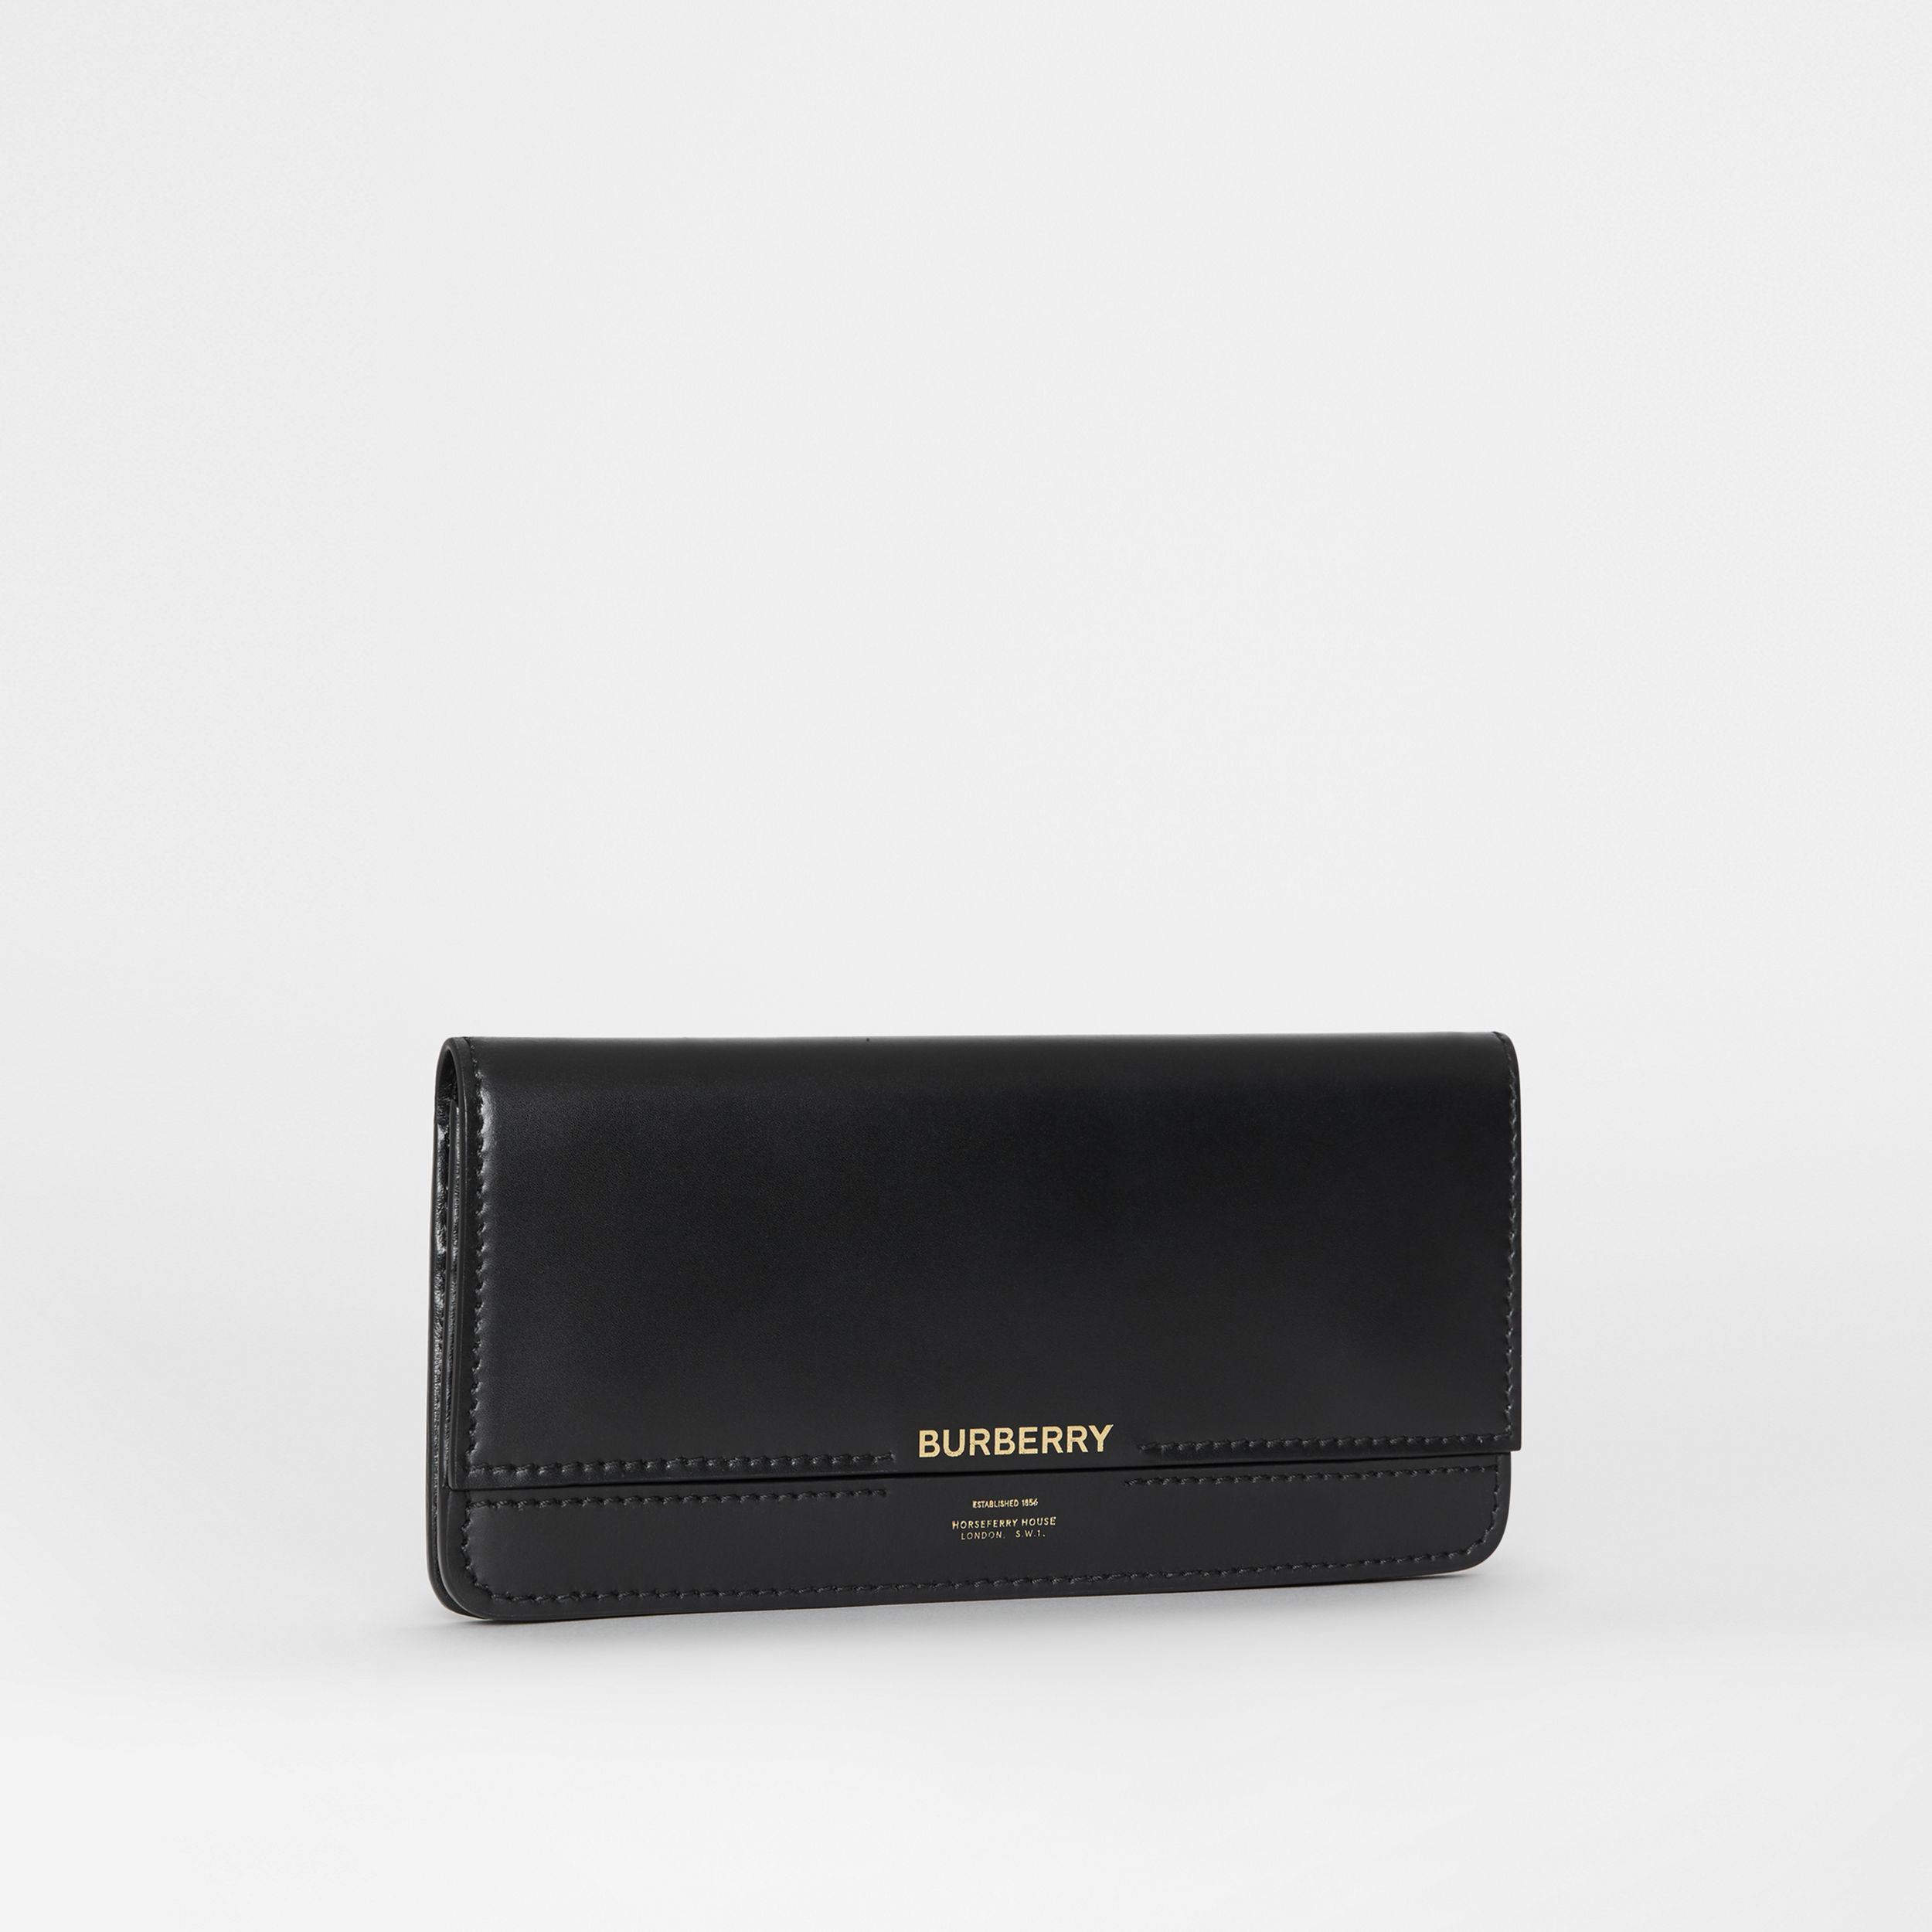 Horseferry Embossed Leather Continental Wallet in Black - Women | Burberry - 4